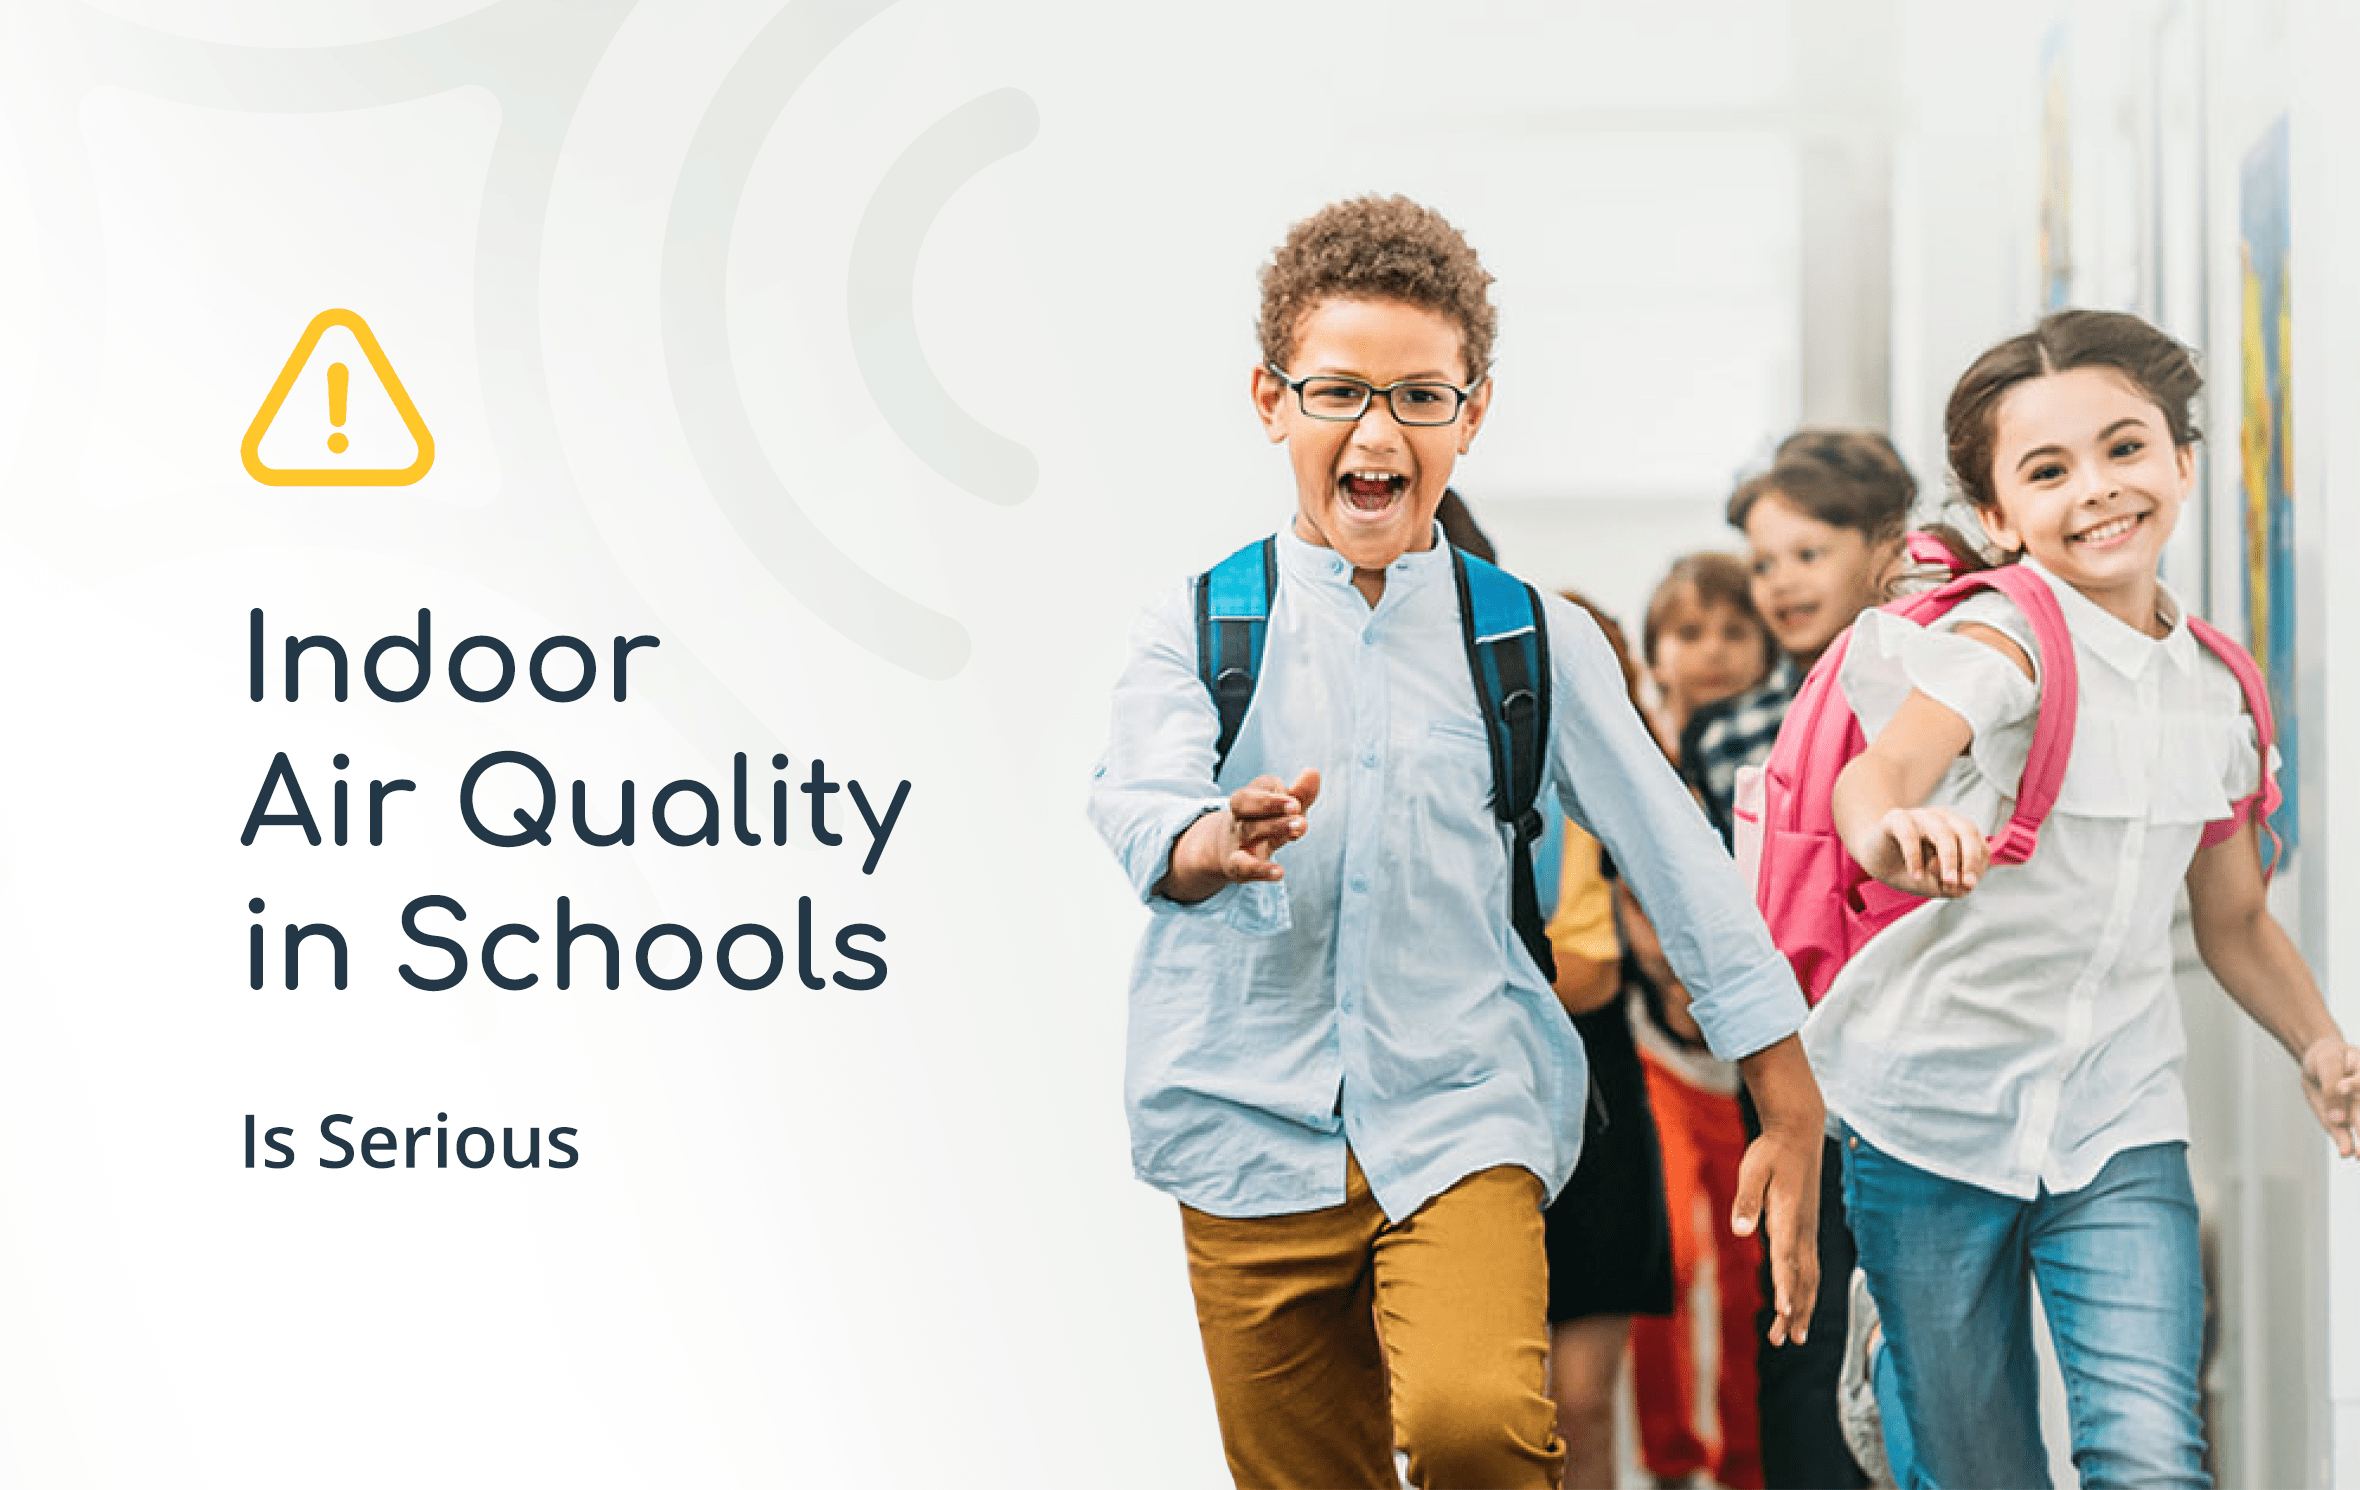 Indoor Air Quality in Schools is serious